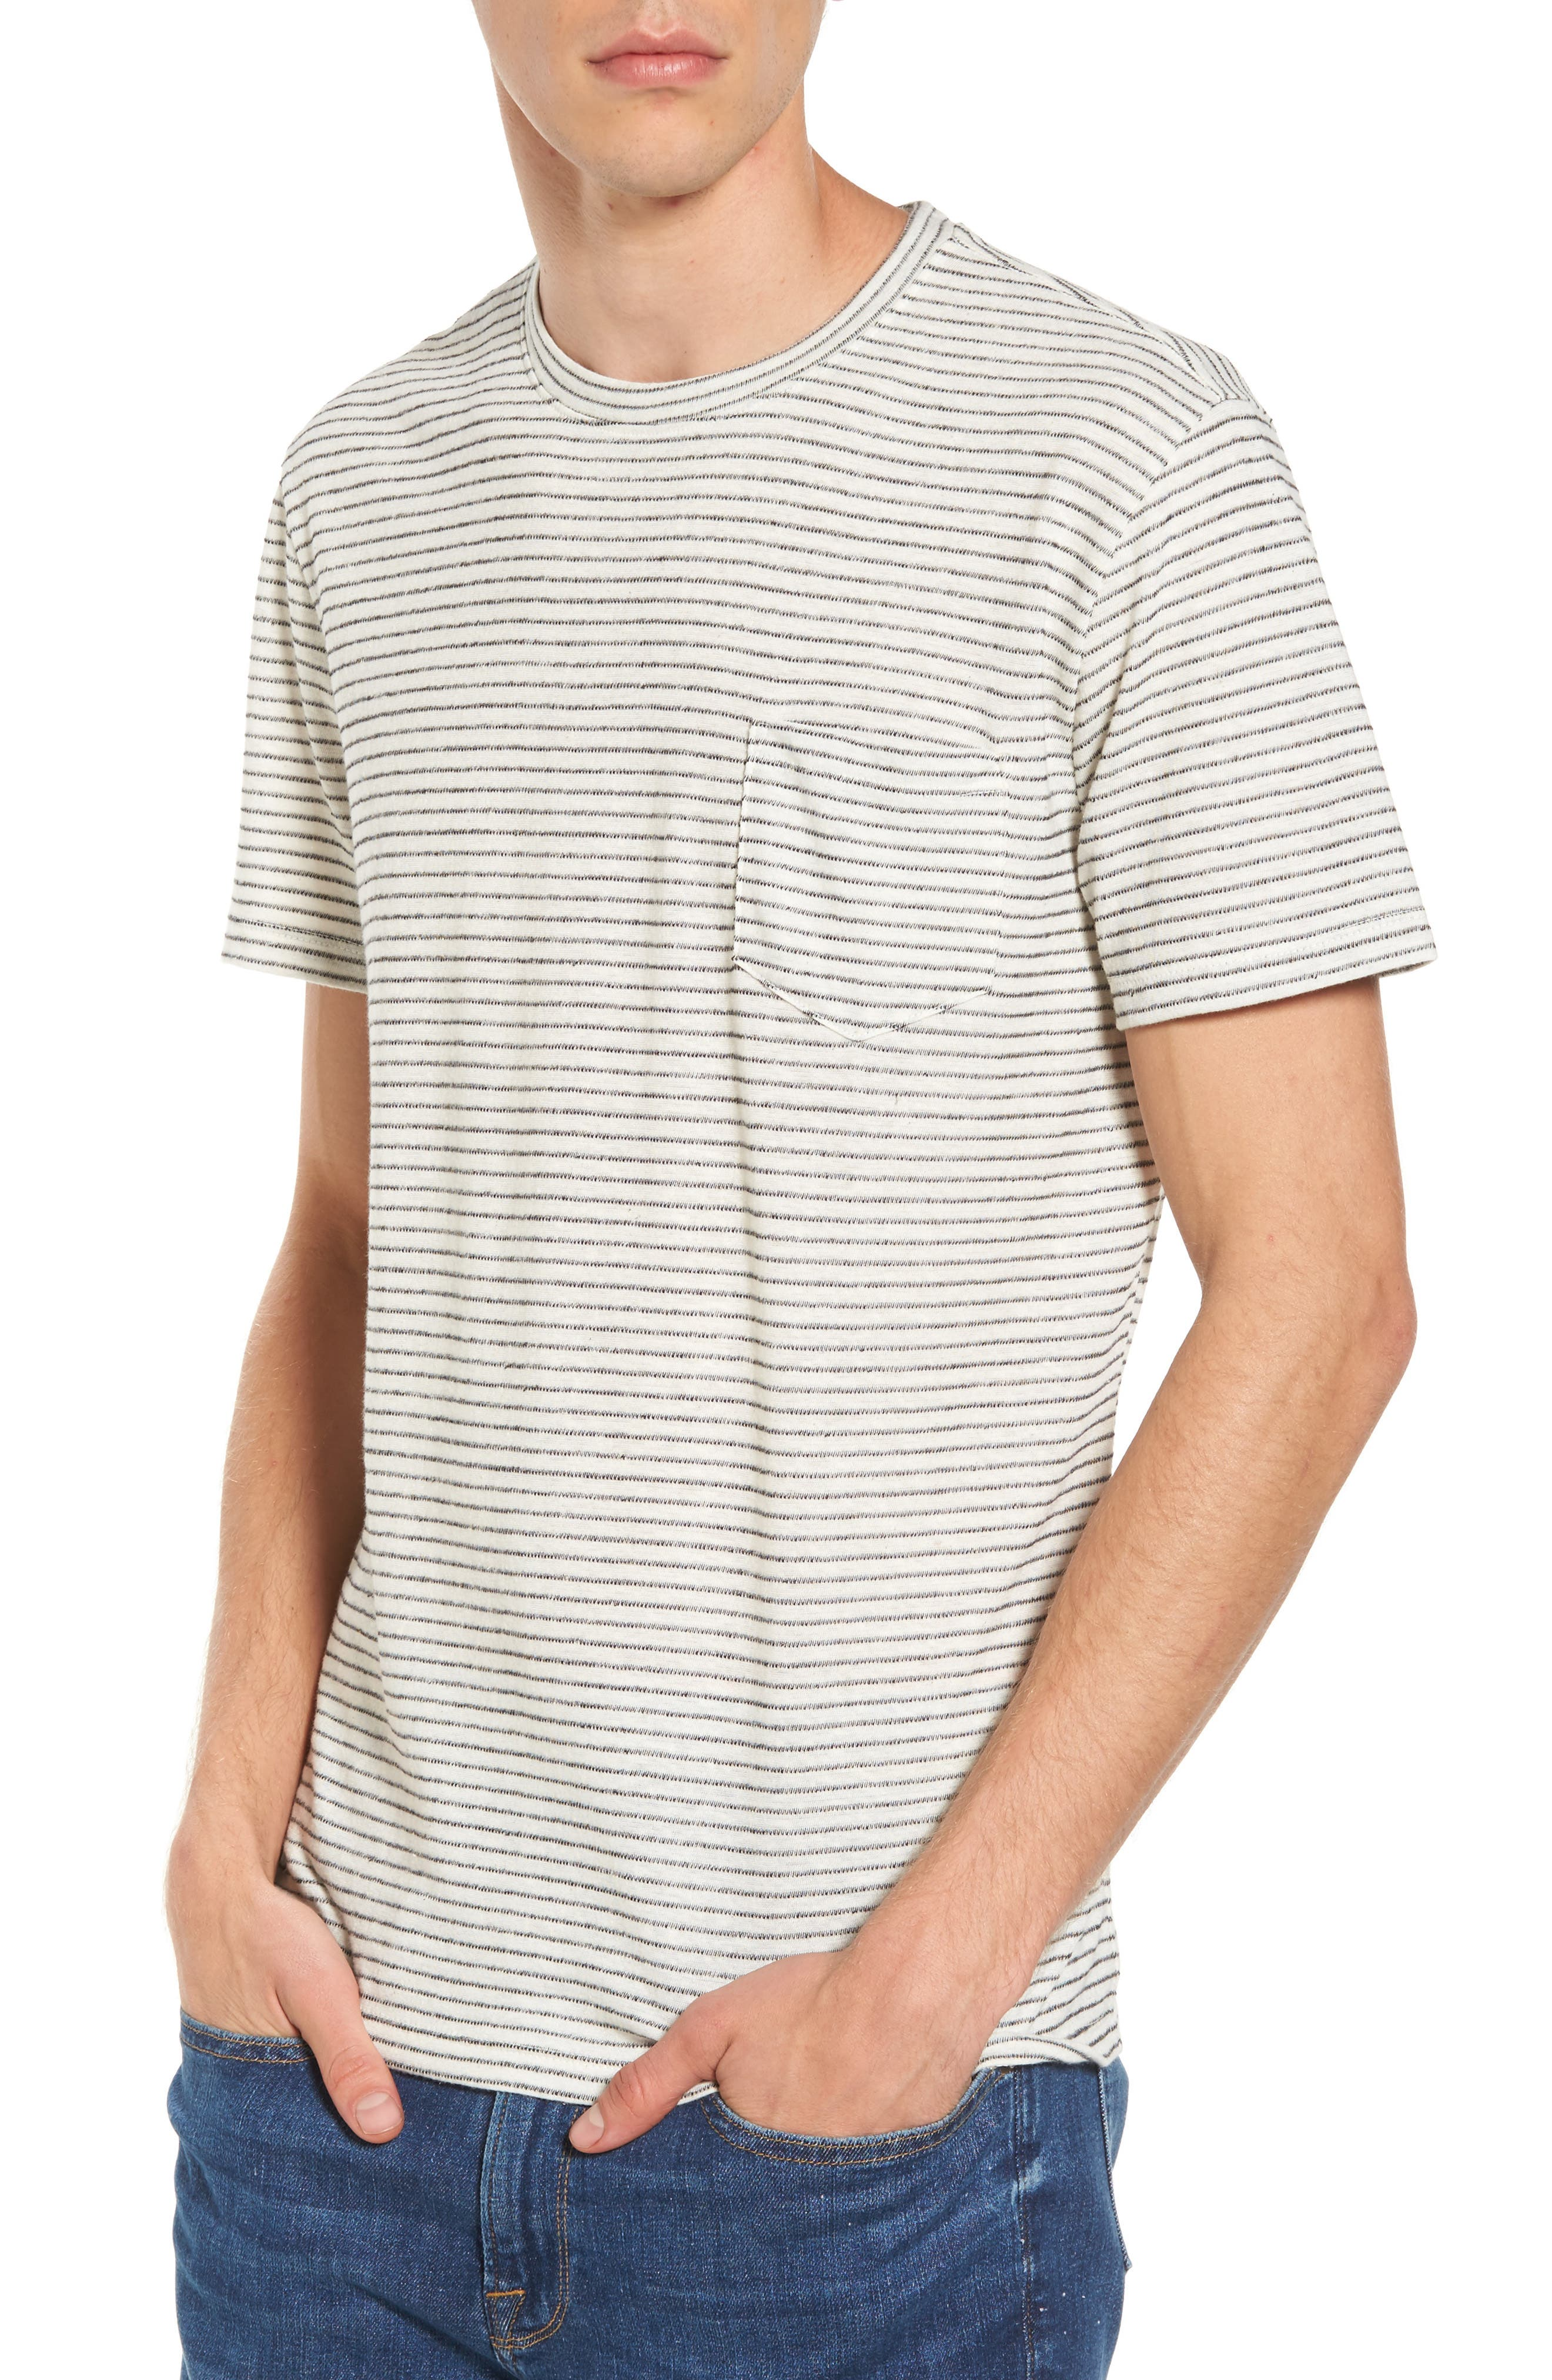 The Rail Stripe Pocket T-Shirt